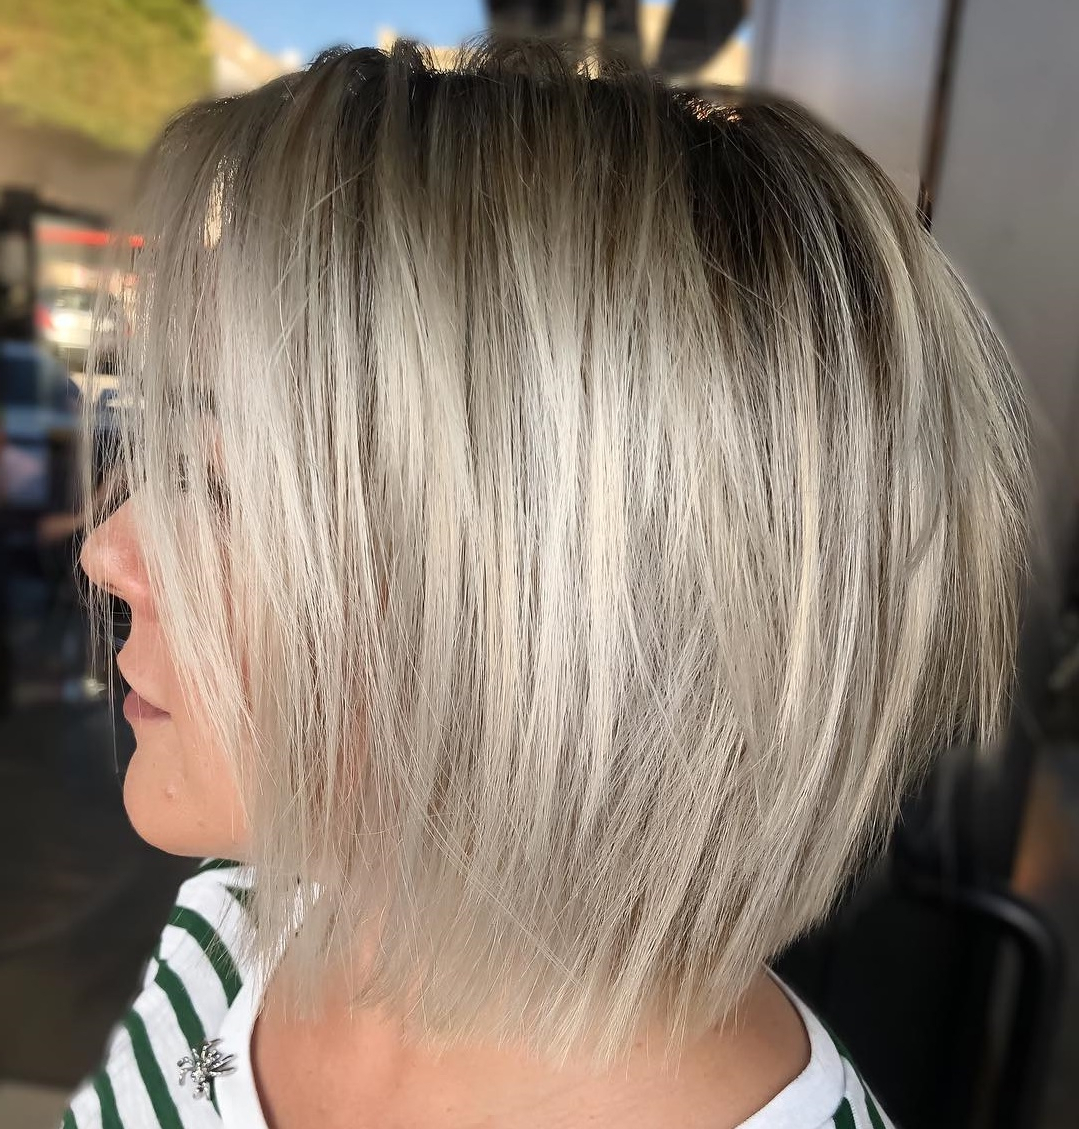 Latest Textured And Layered Graduated Bob Hairstyles In 40 Awesome Ideas For Layered Bob Hairstyles You Can't Miss (View 11 of 20)